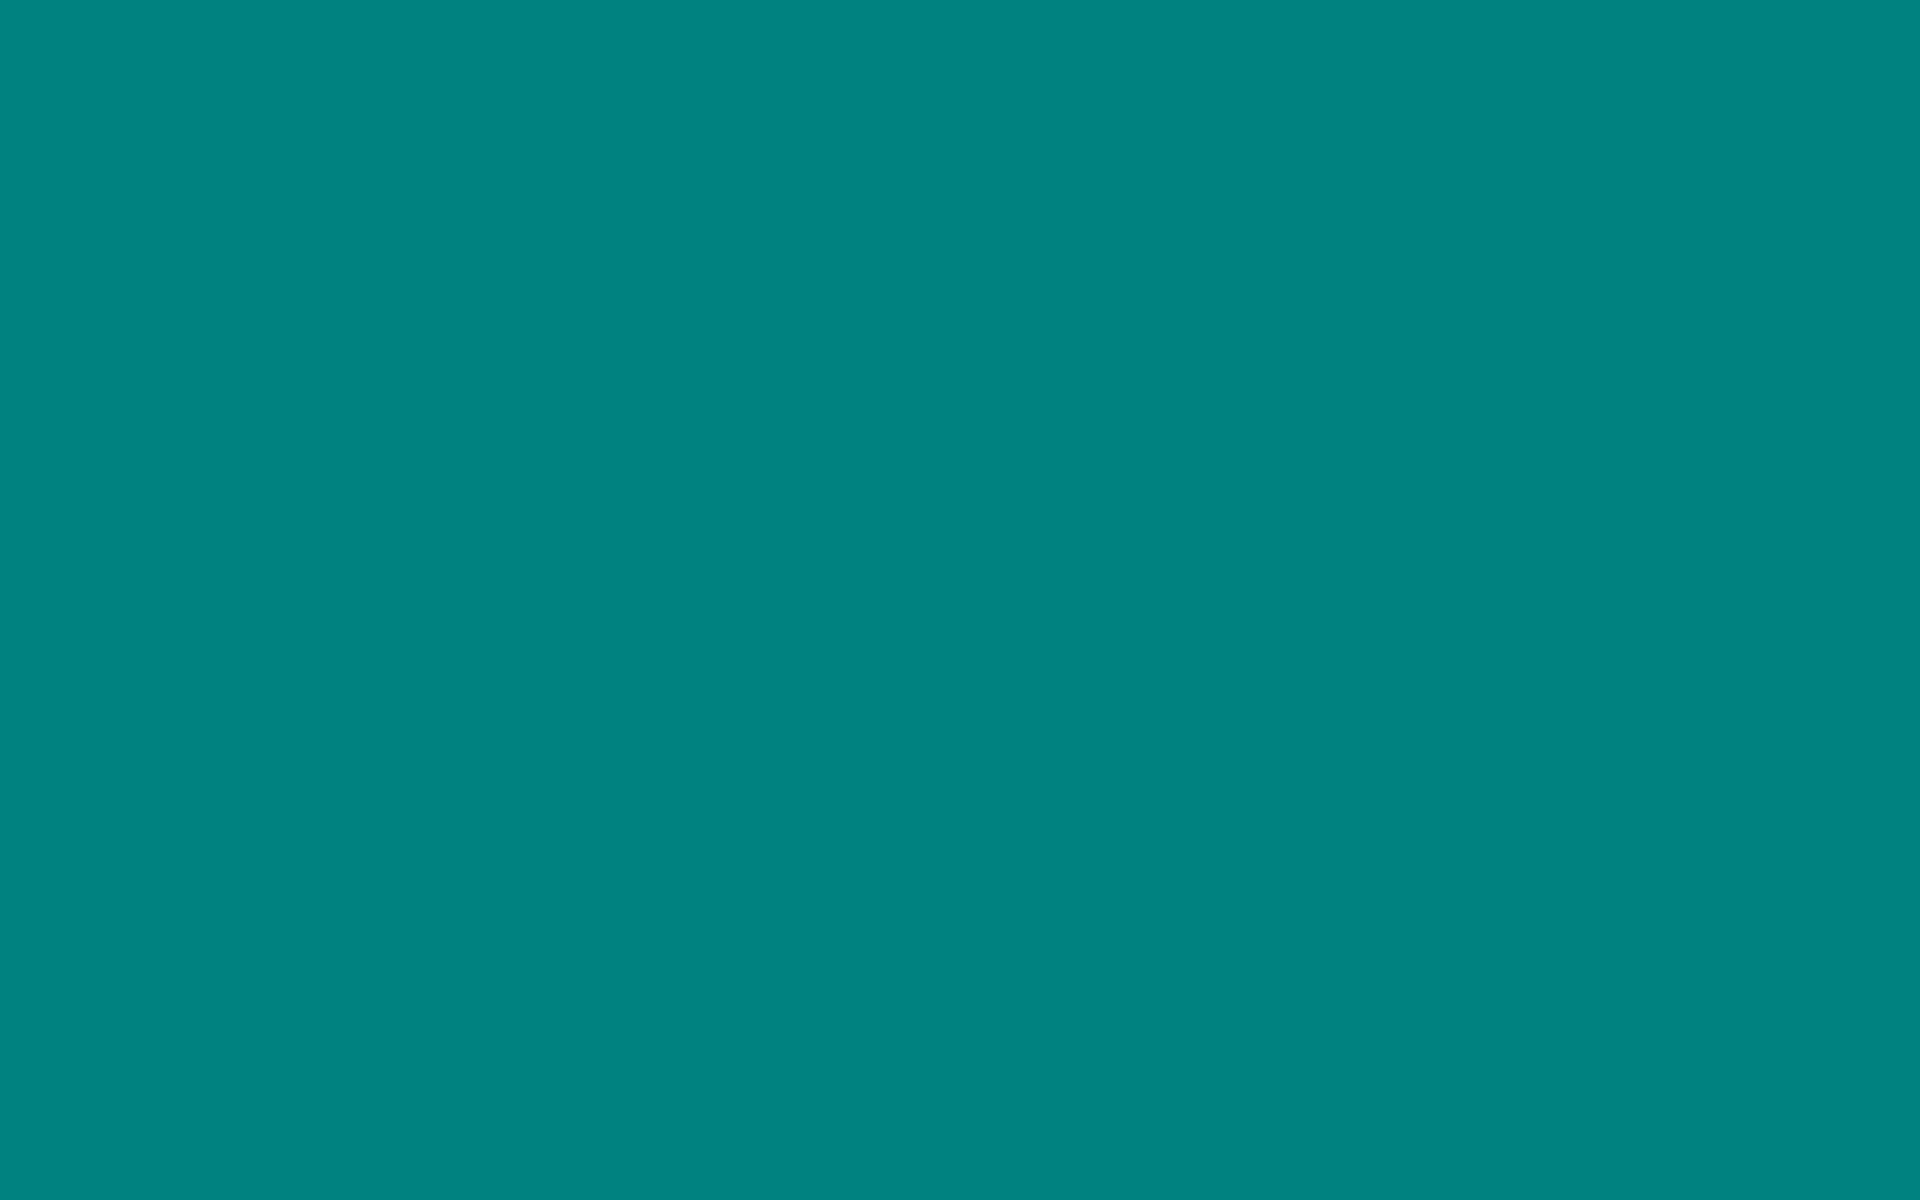 teal color wallpaper high definition high quality